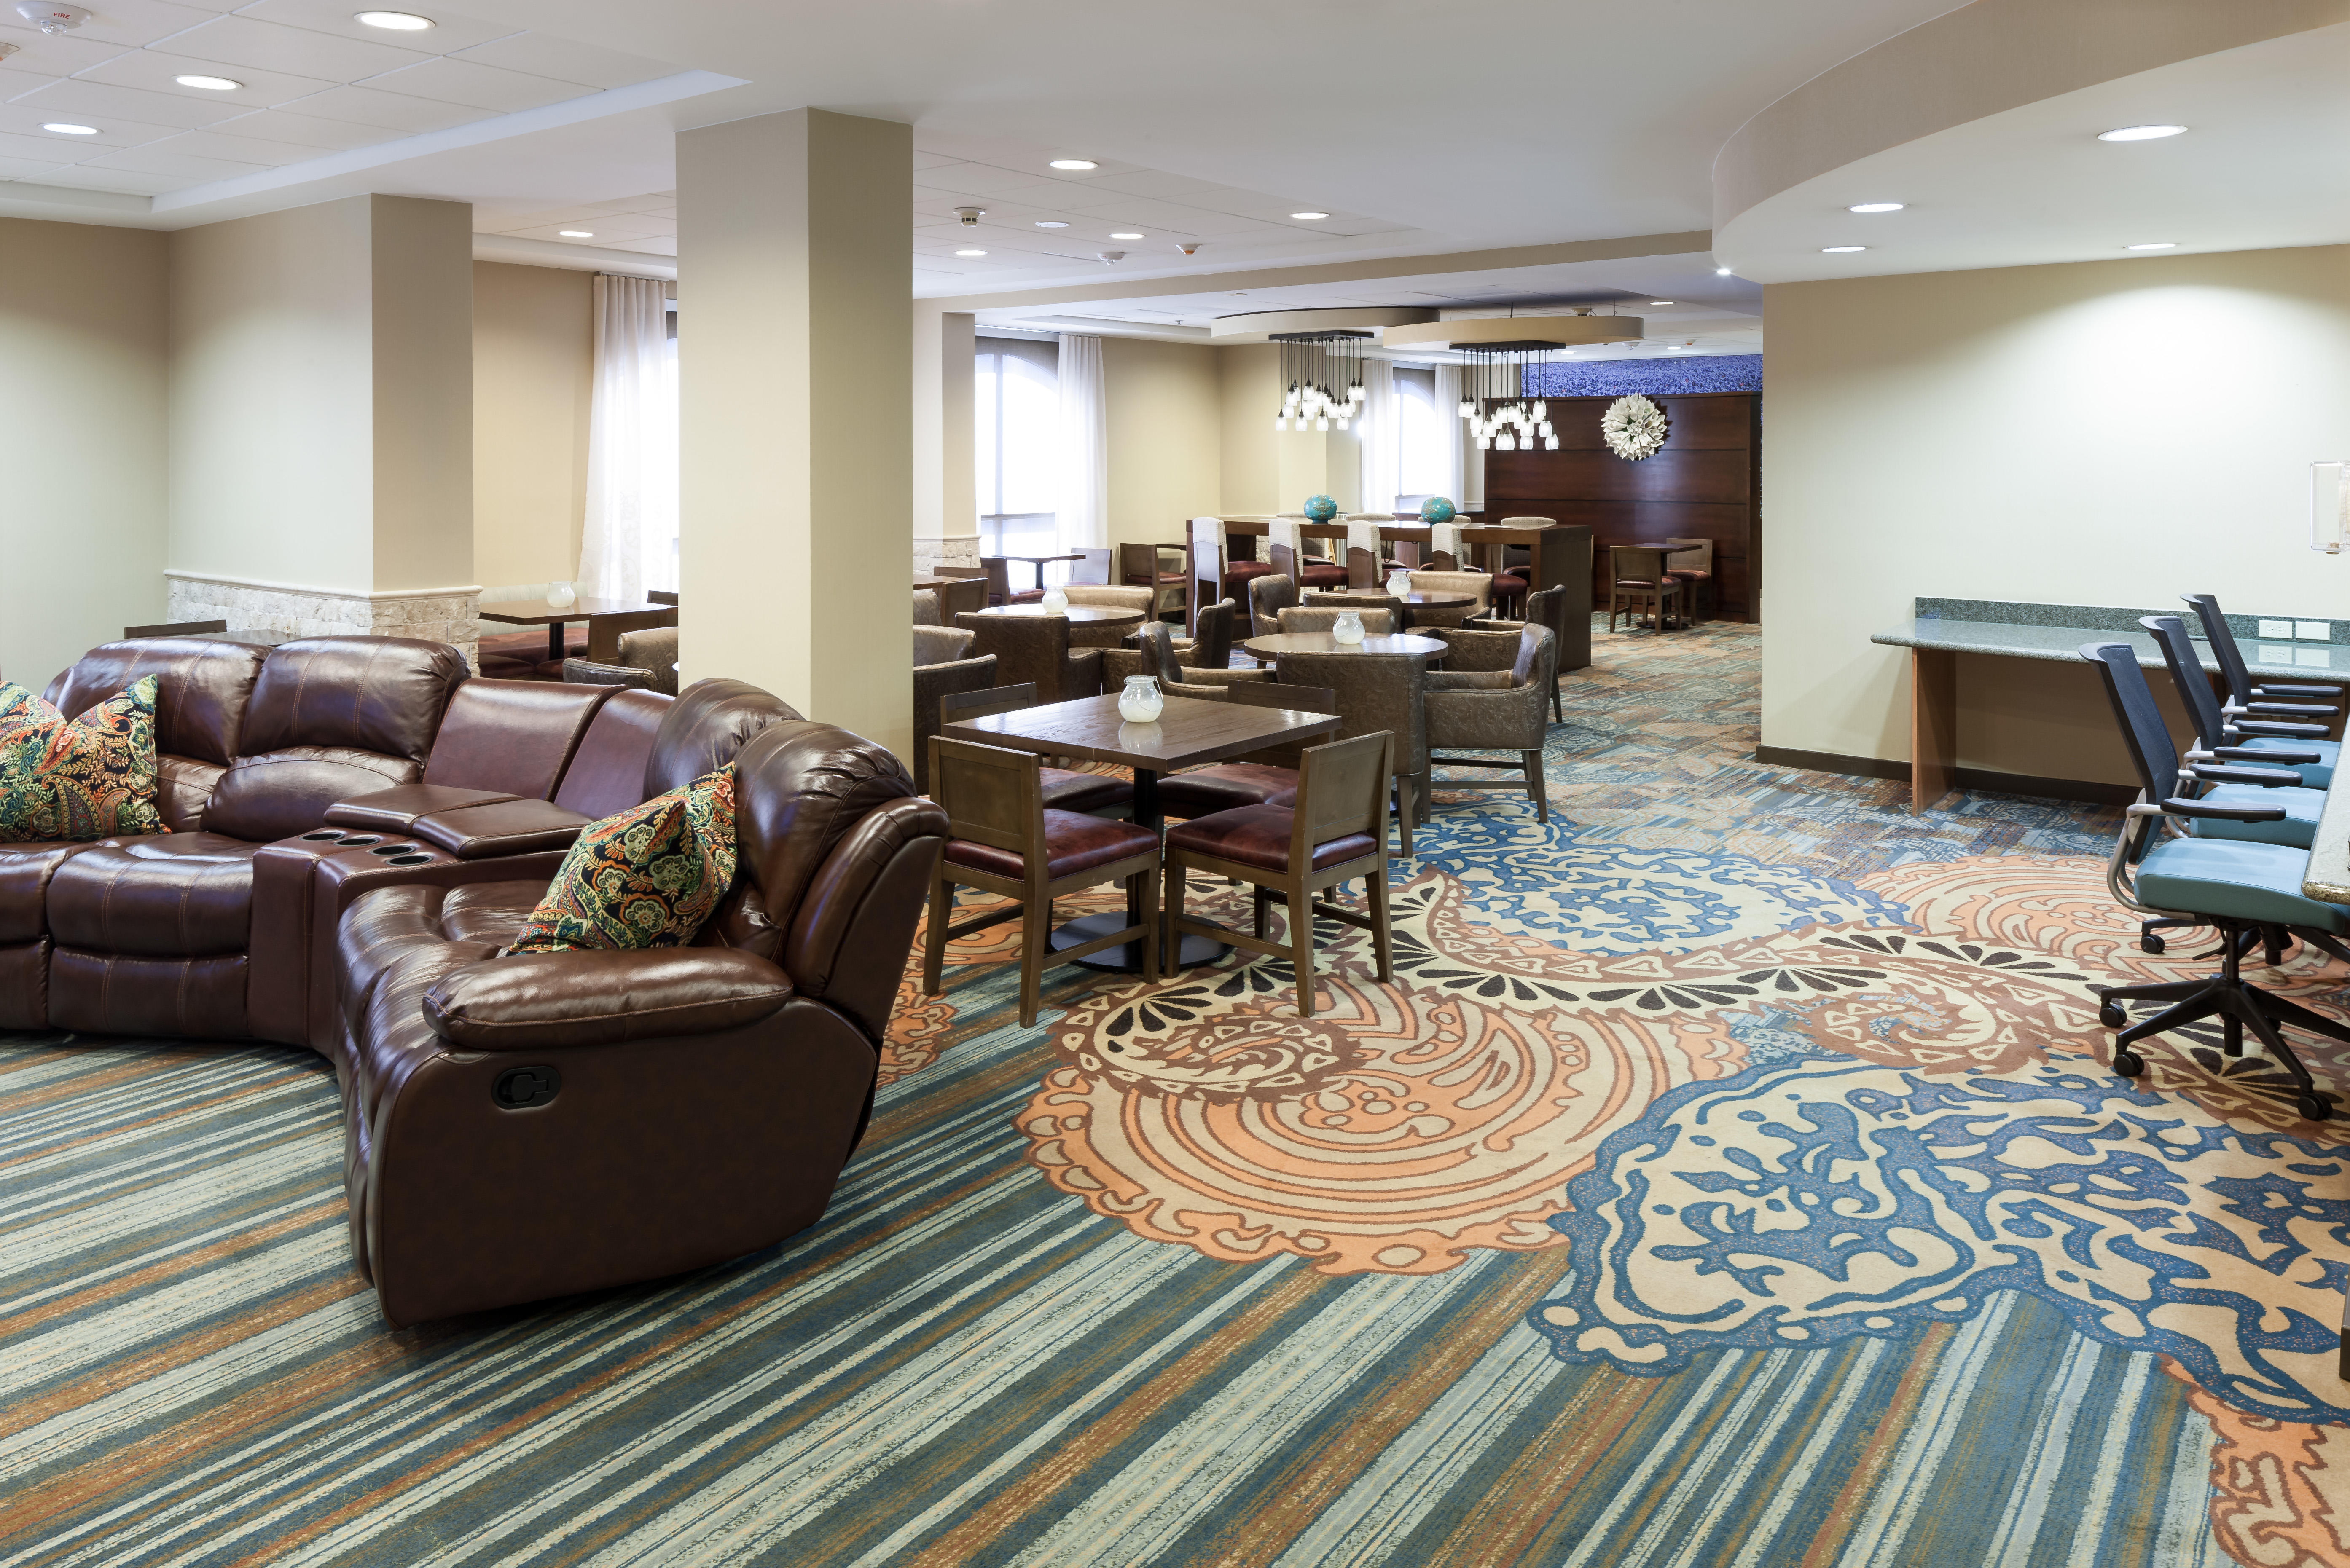 SpringHill Suites by Marriott Dallas Downtown/West End image 3